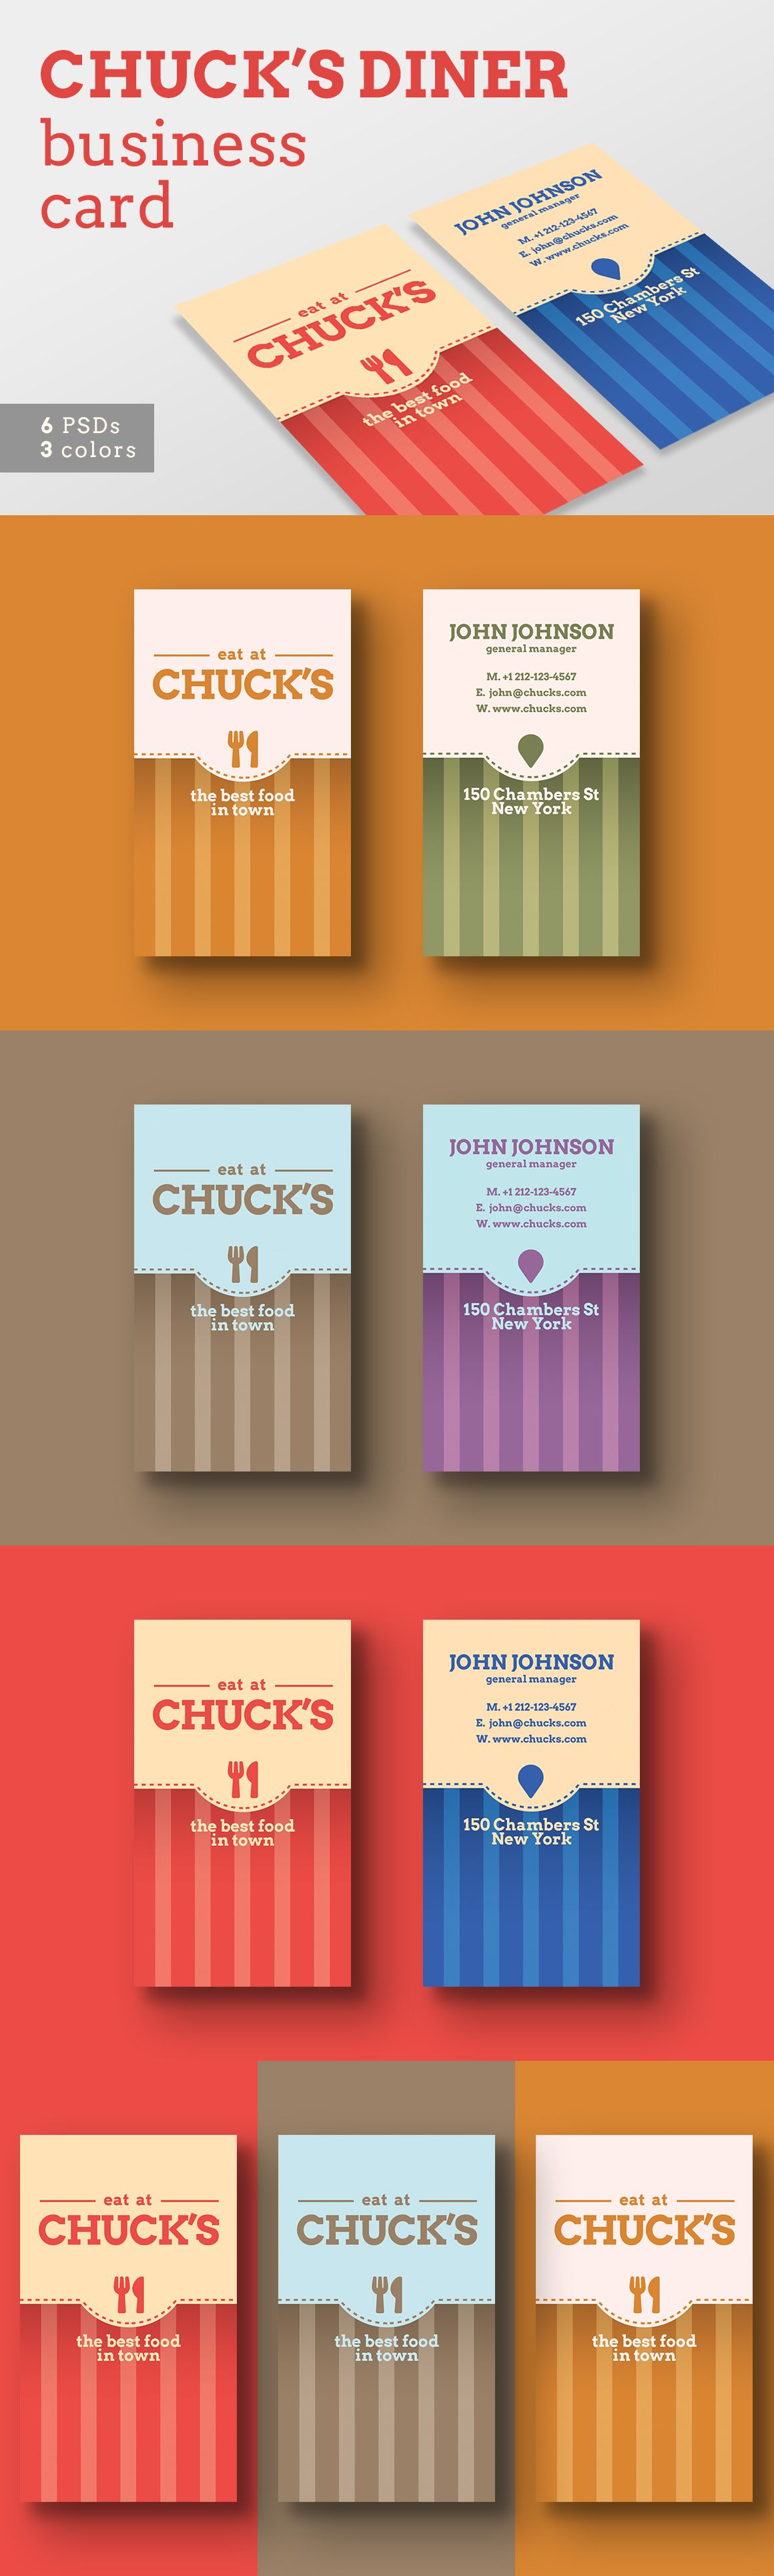 Local Diner Business Card Templates Restaurant Business Cards Business Card Inspiration Business Cards Creative